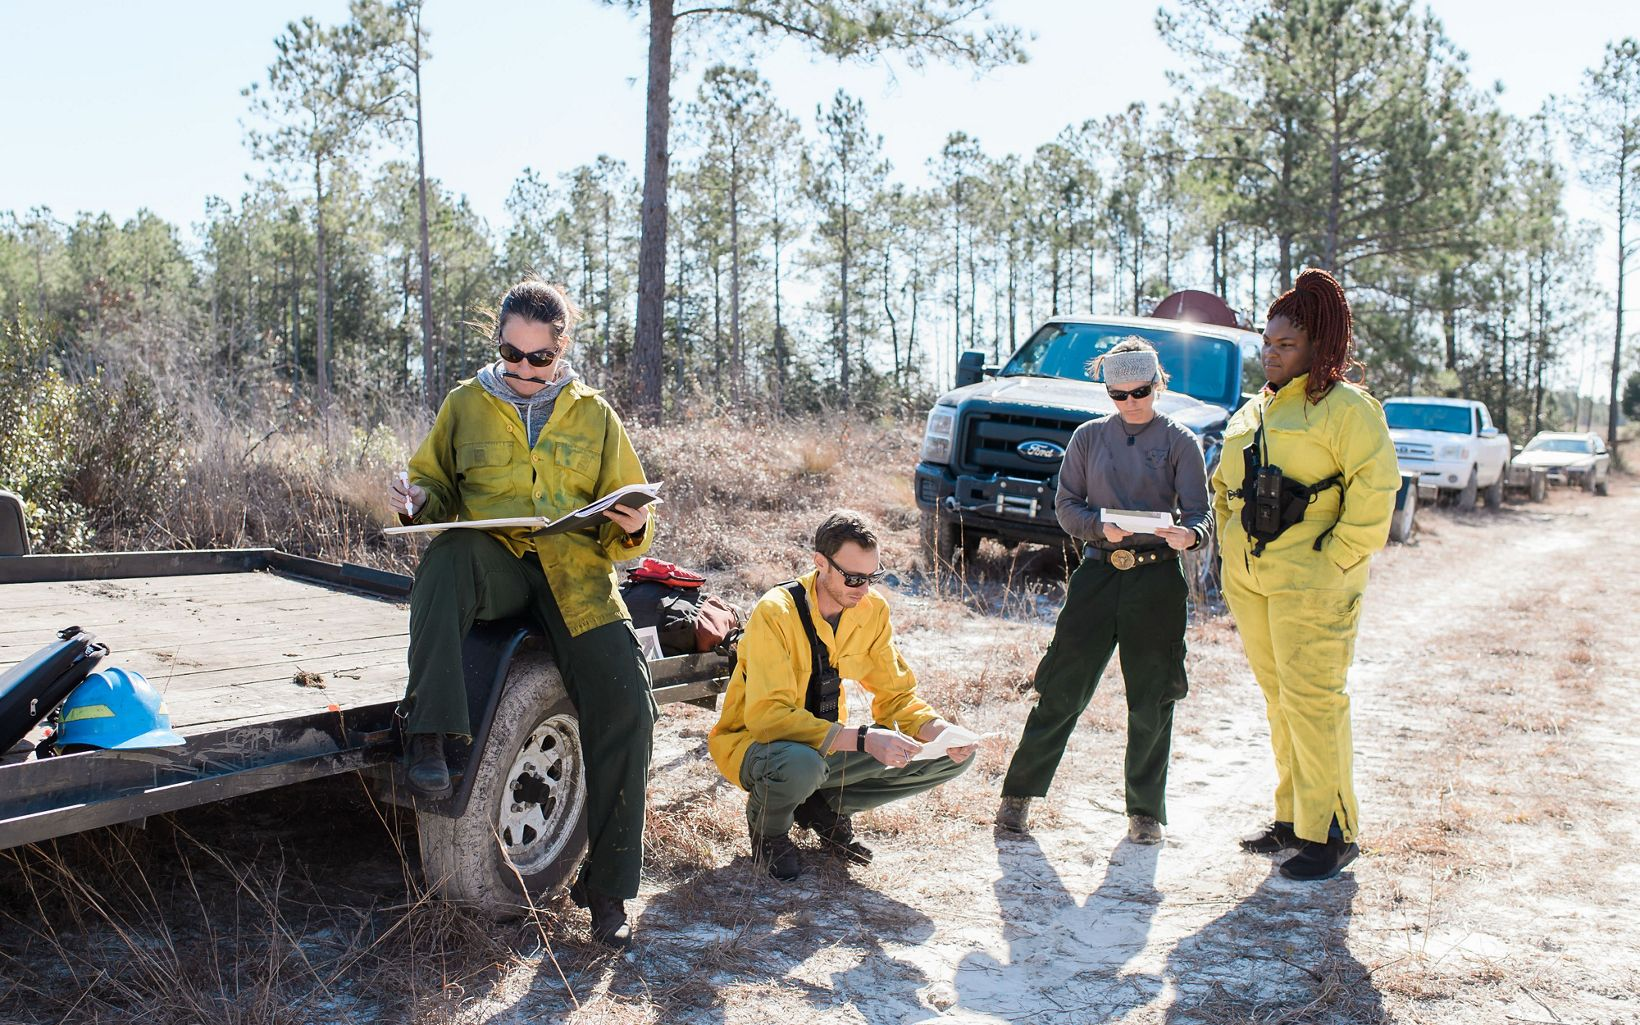 Four people in field gear next to a line of trucks on the edge of a forest.